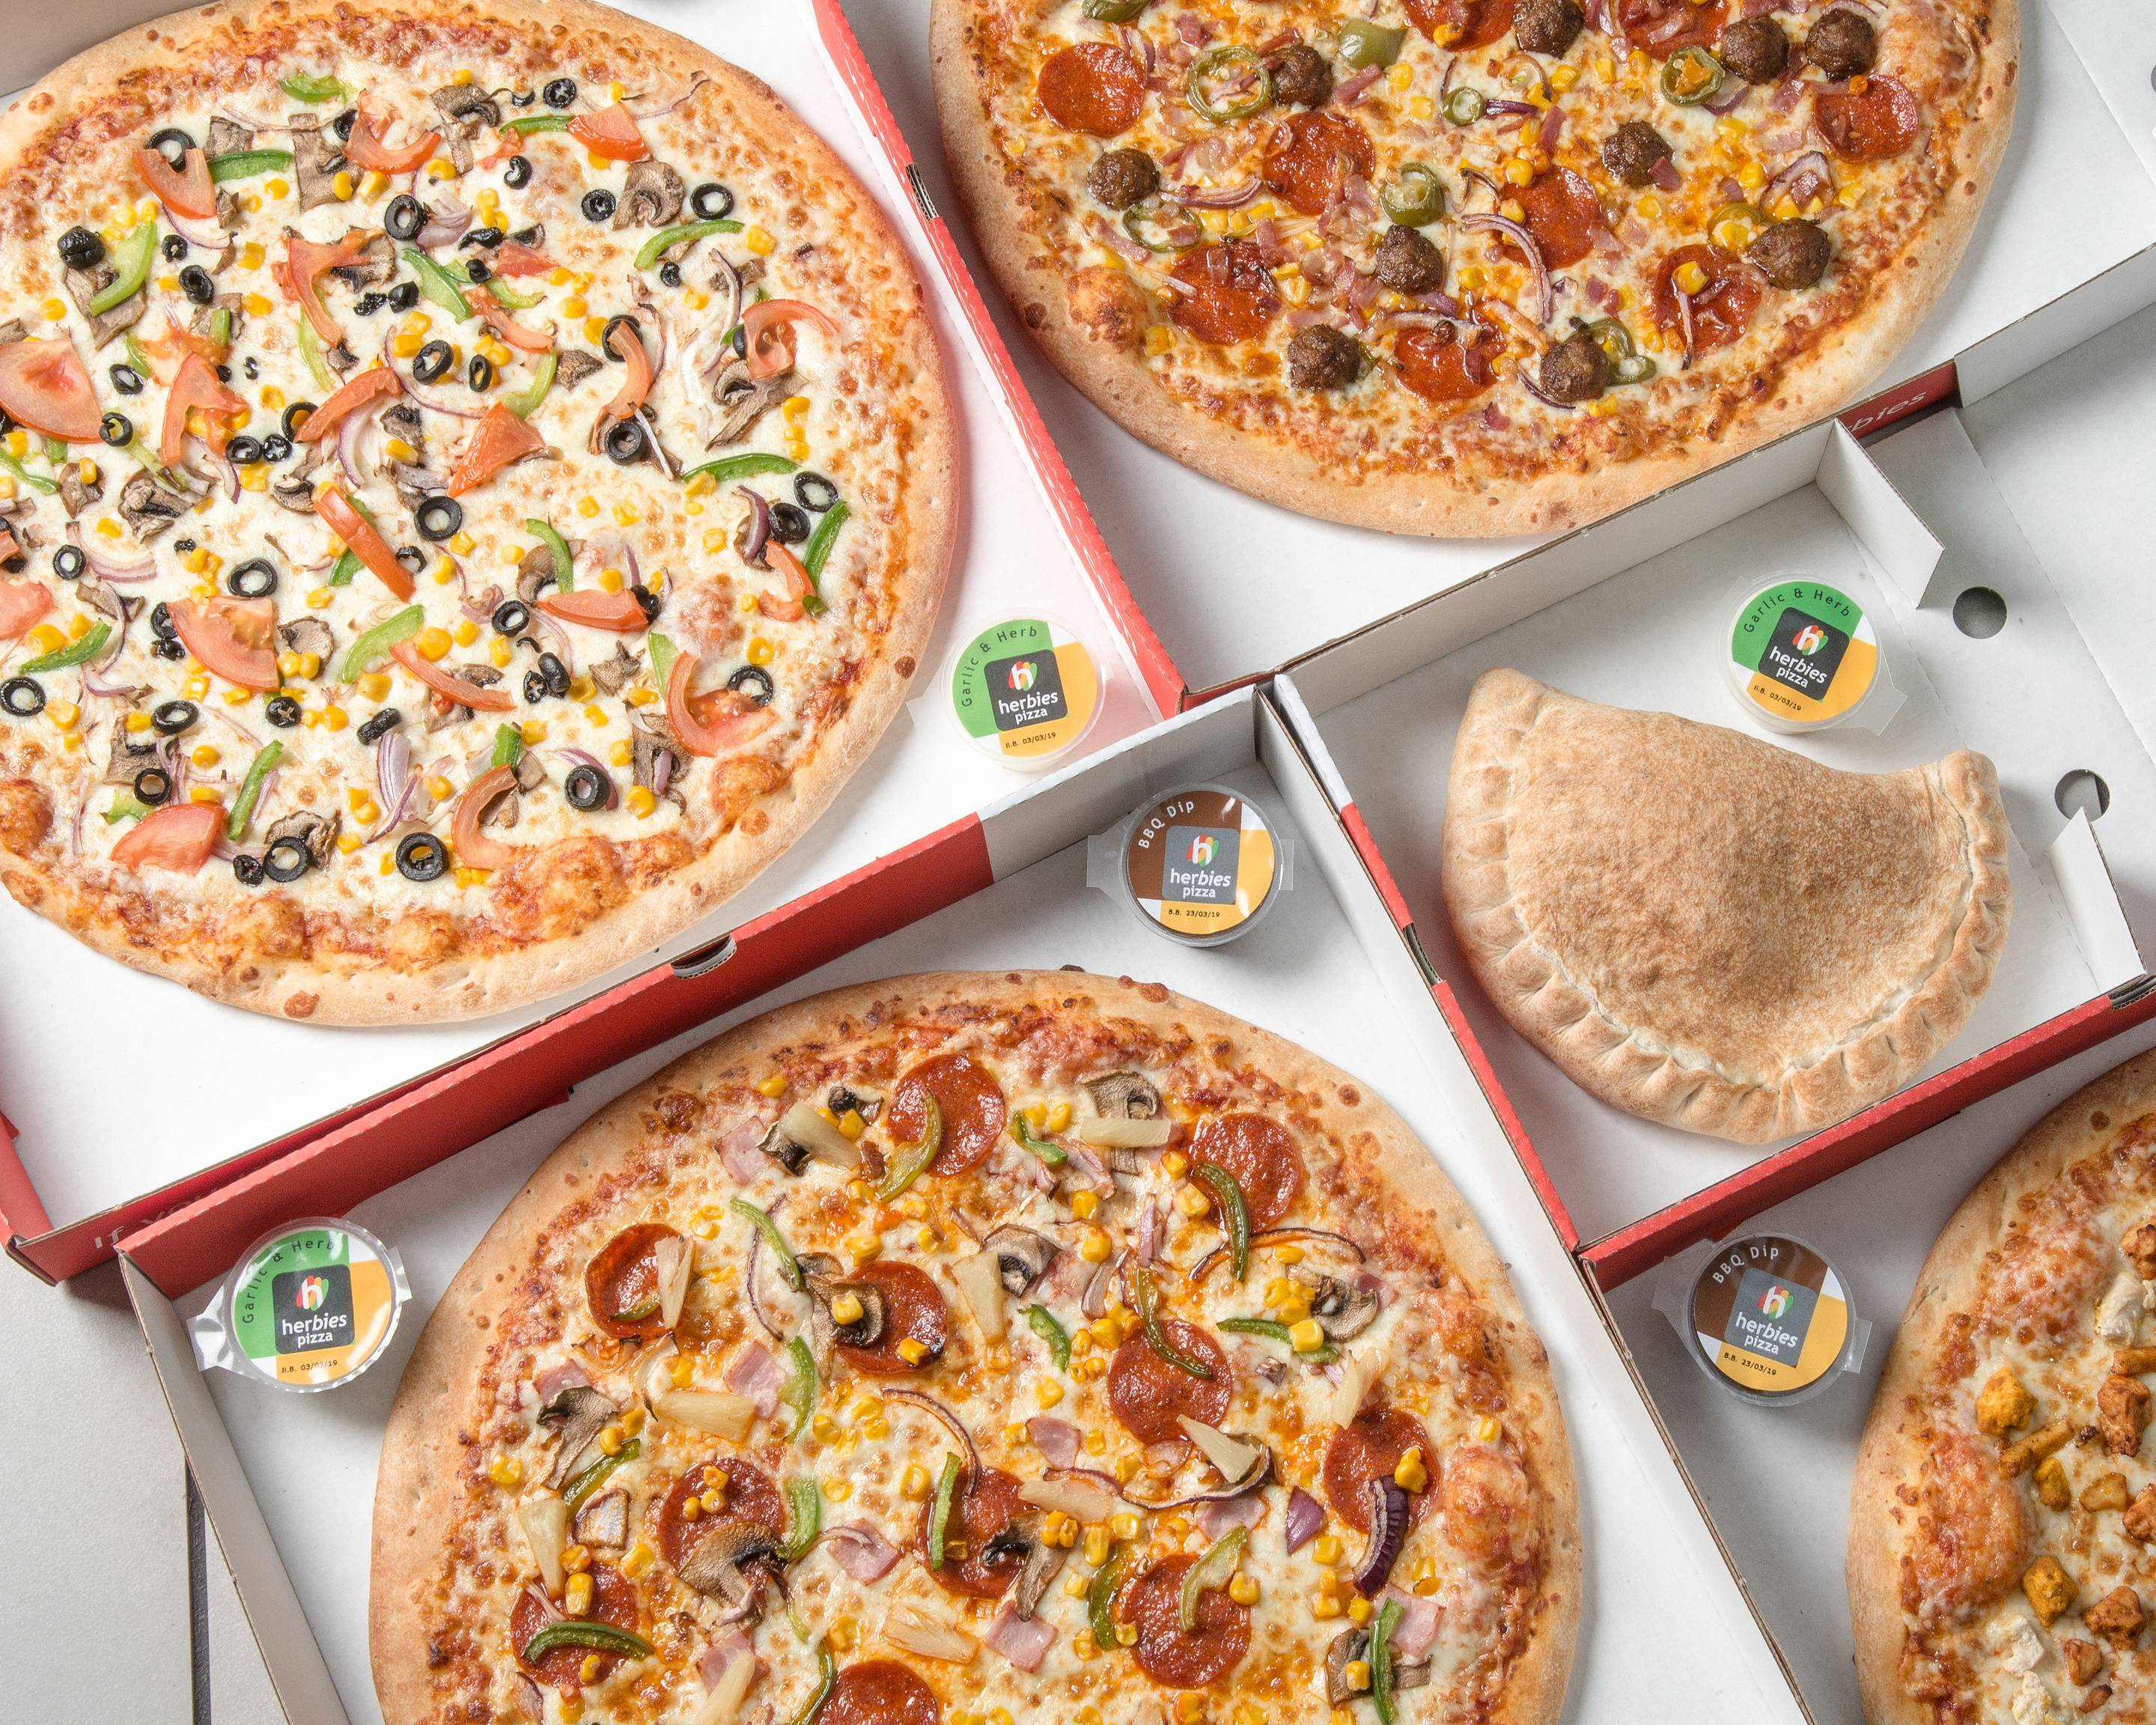 Herbies Pizza Delivery Uber Eats